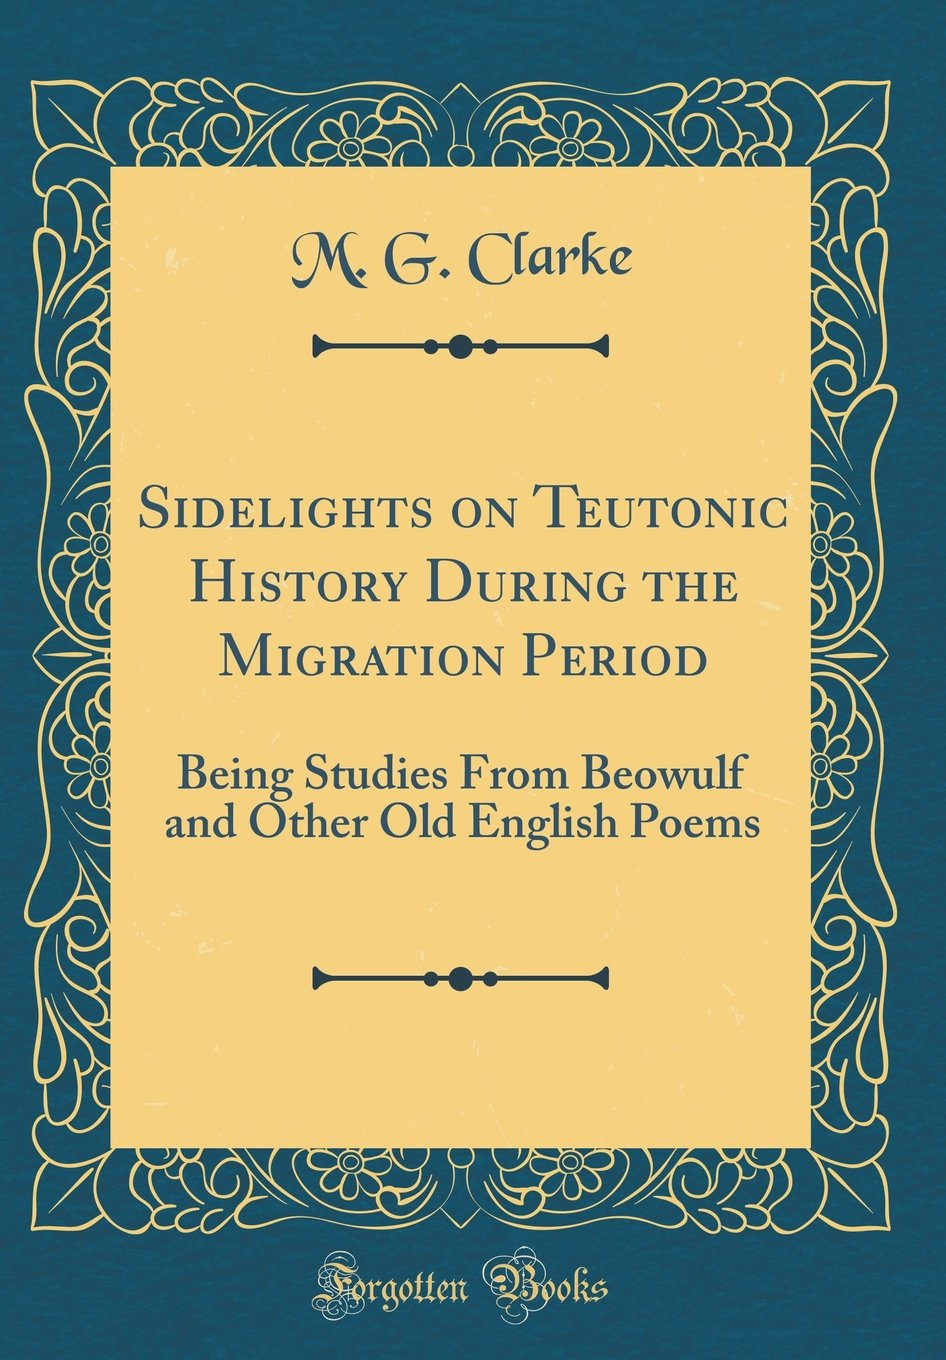 sidelights on teutonic history during the migration period being  sidelights on teutonic history during the migration period being studies  from beowulf and other old english poems classic reprint hardcover   april